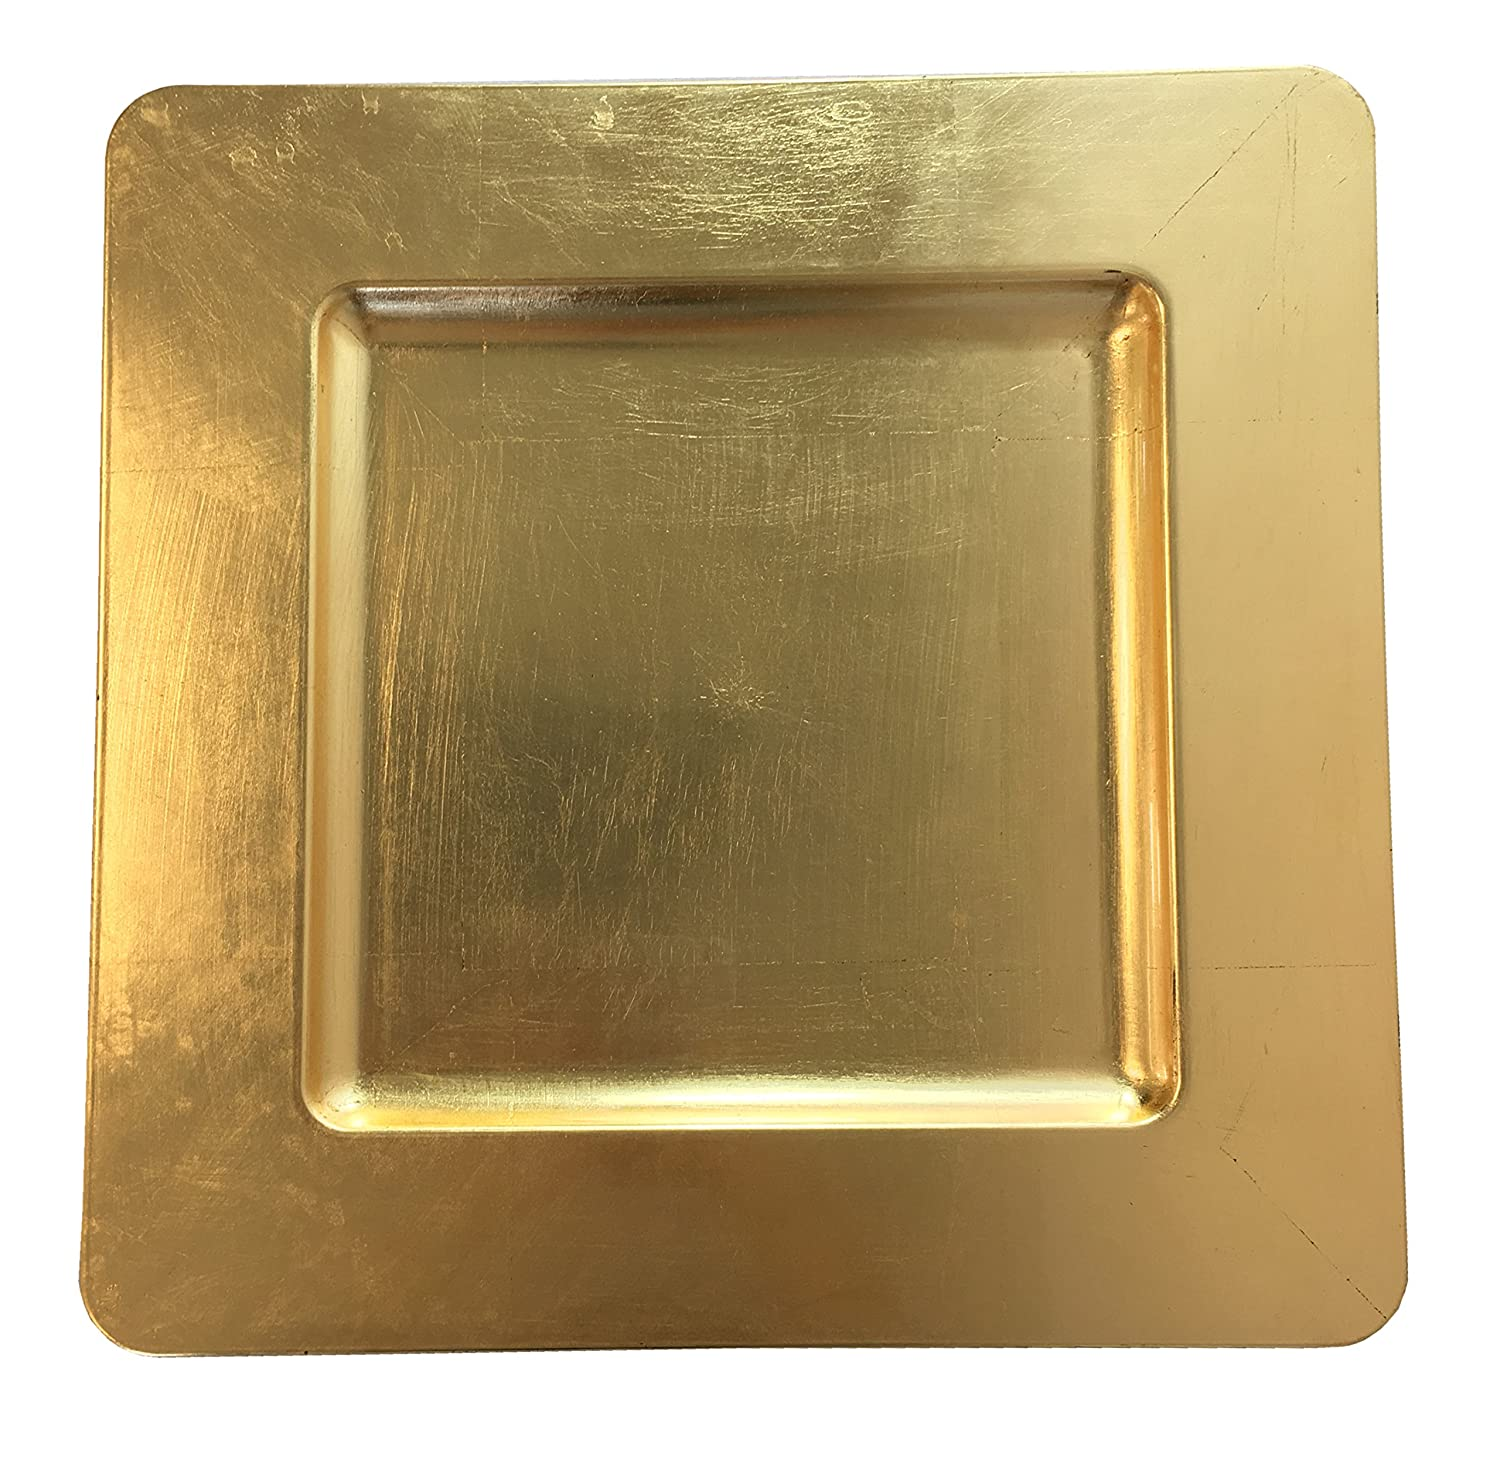 Luxurious Gold Heavy Duty Square Charger Event Silver Charger Plate (1) Unique Imports